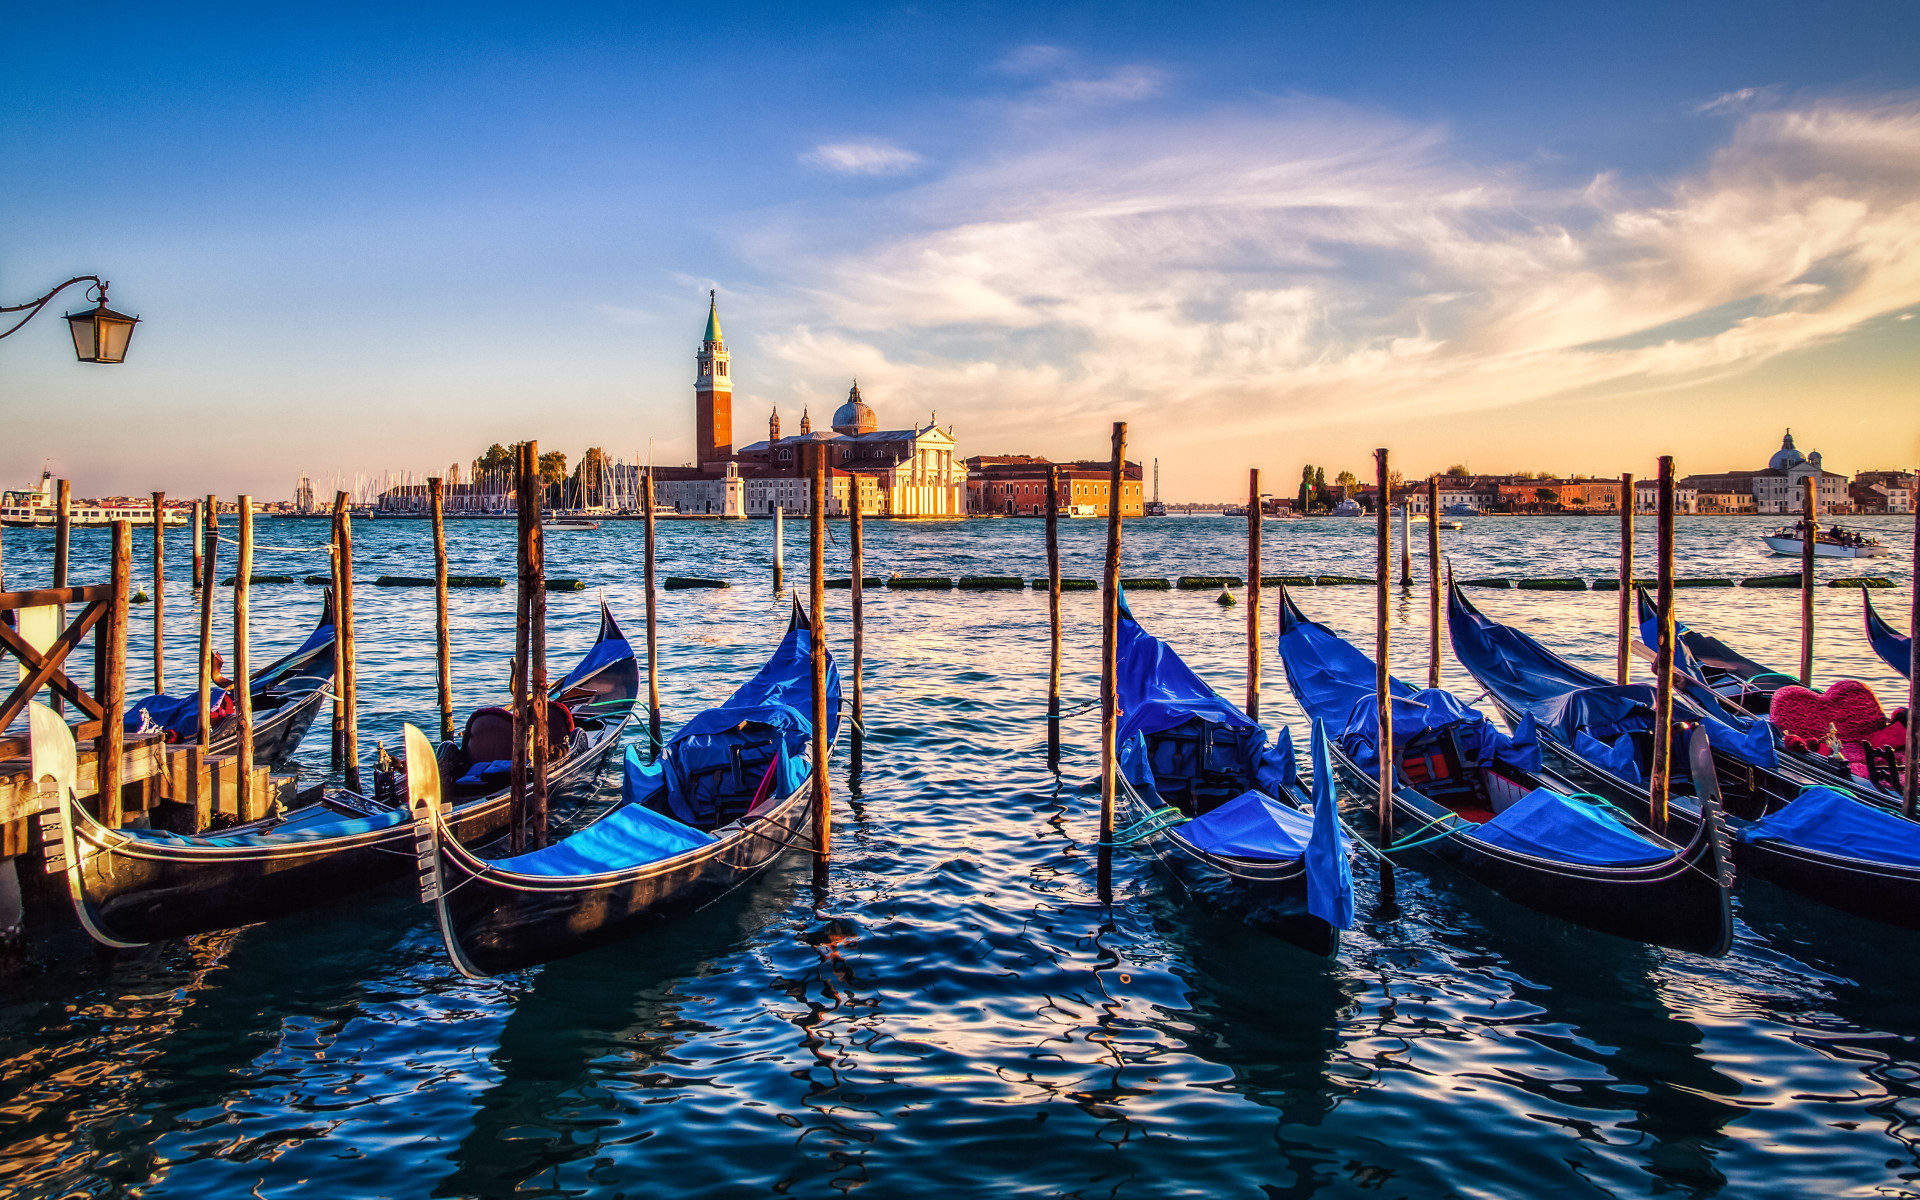 Tour the Grand Canal